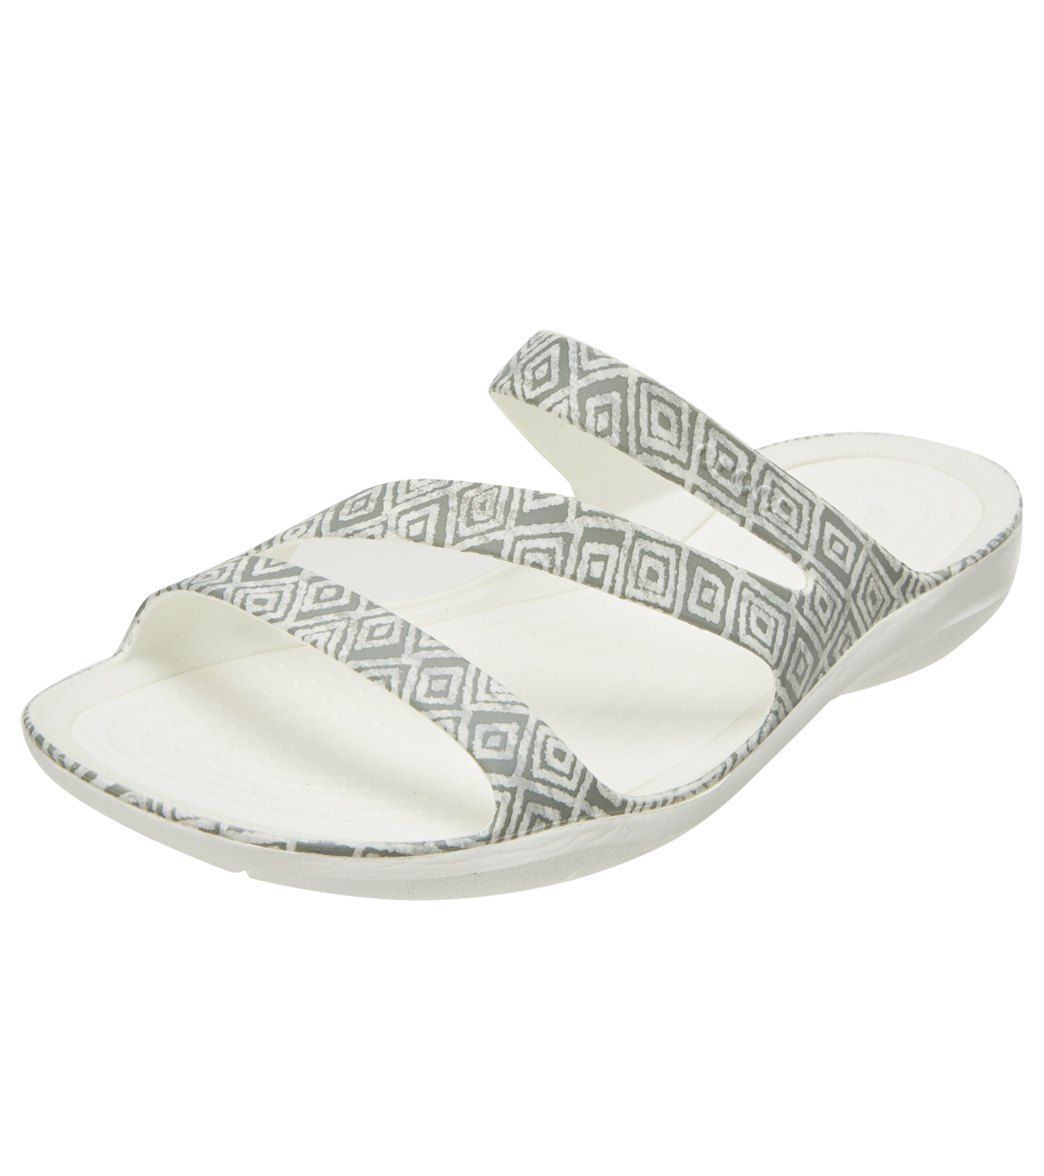 d1f4e277395499 Crocs Women s Swiftwater Graphic Sandal at SwimOutlet.com